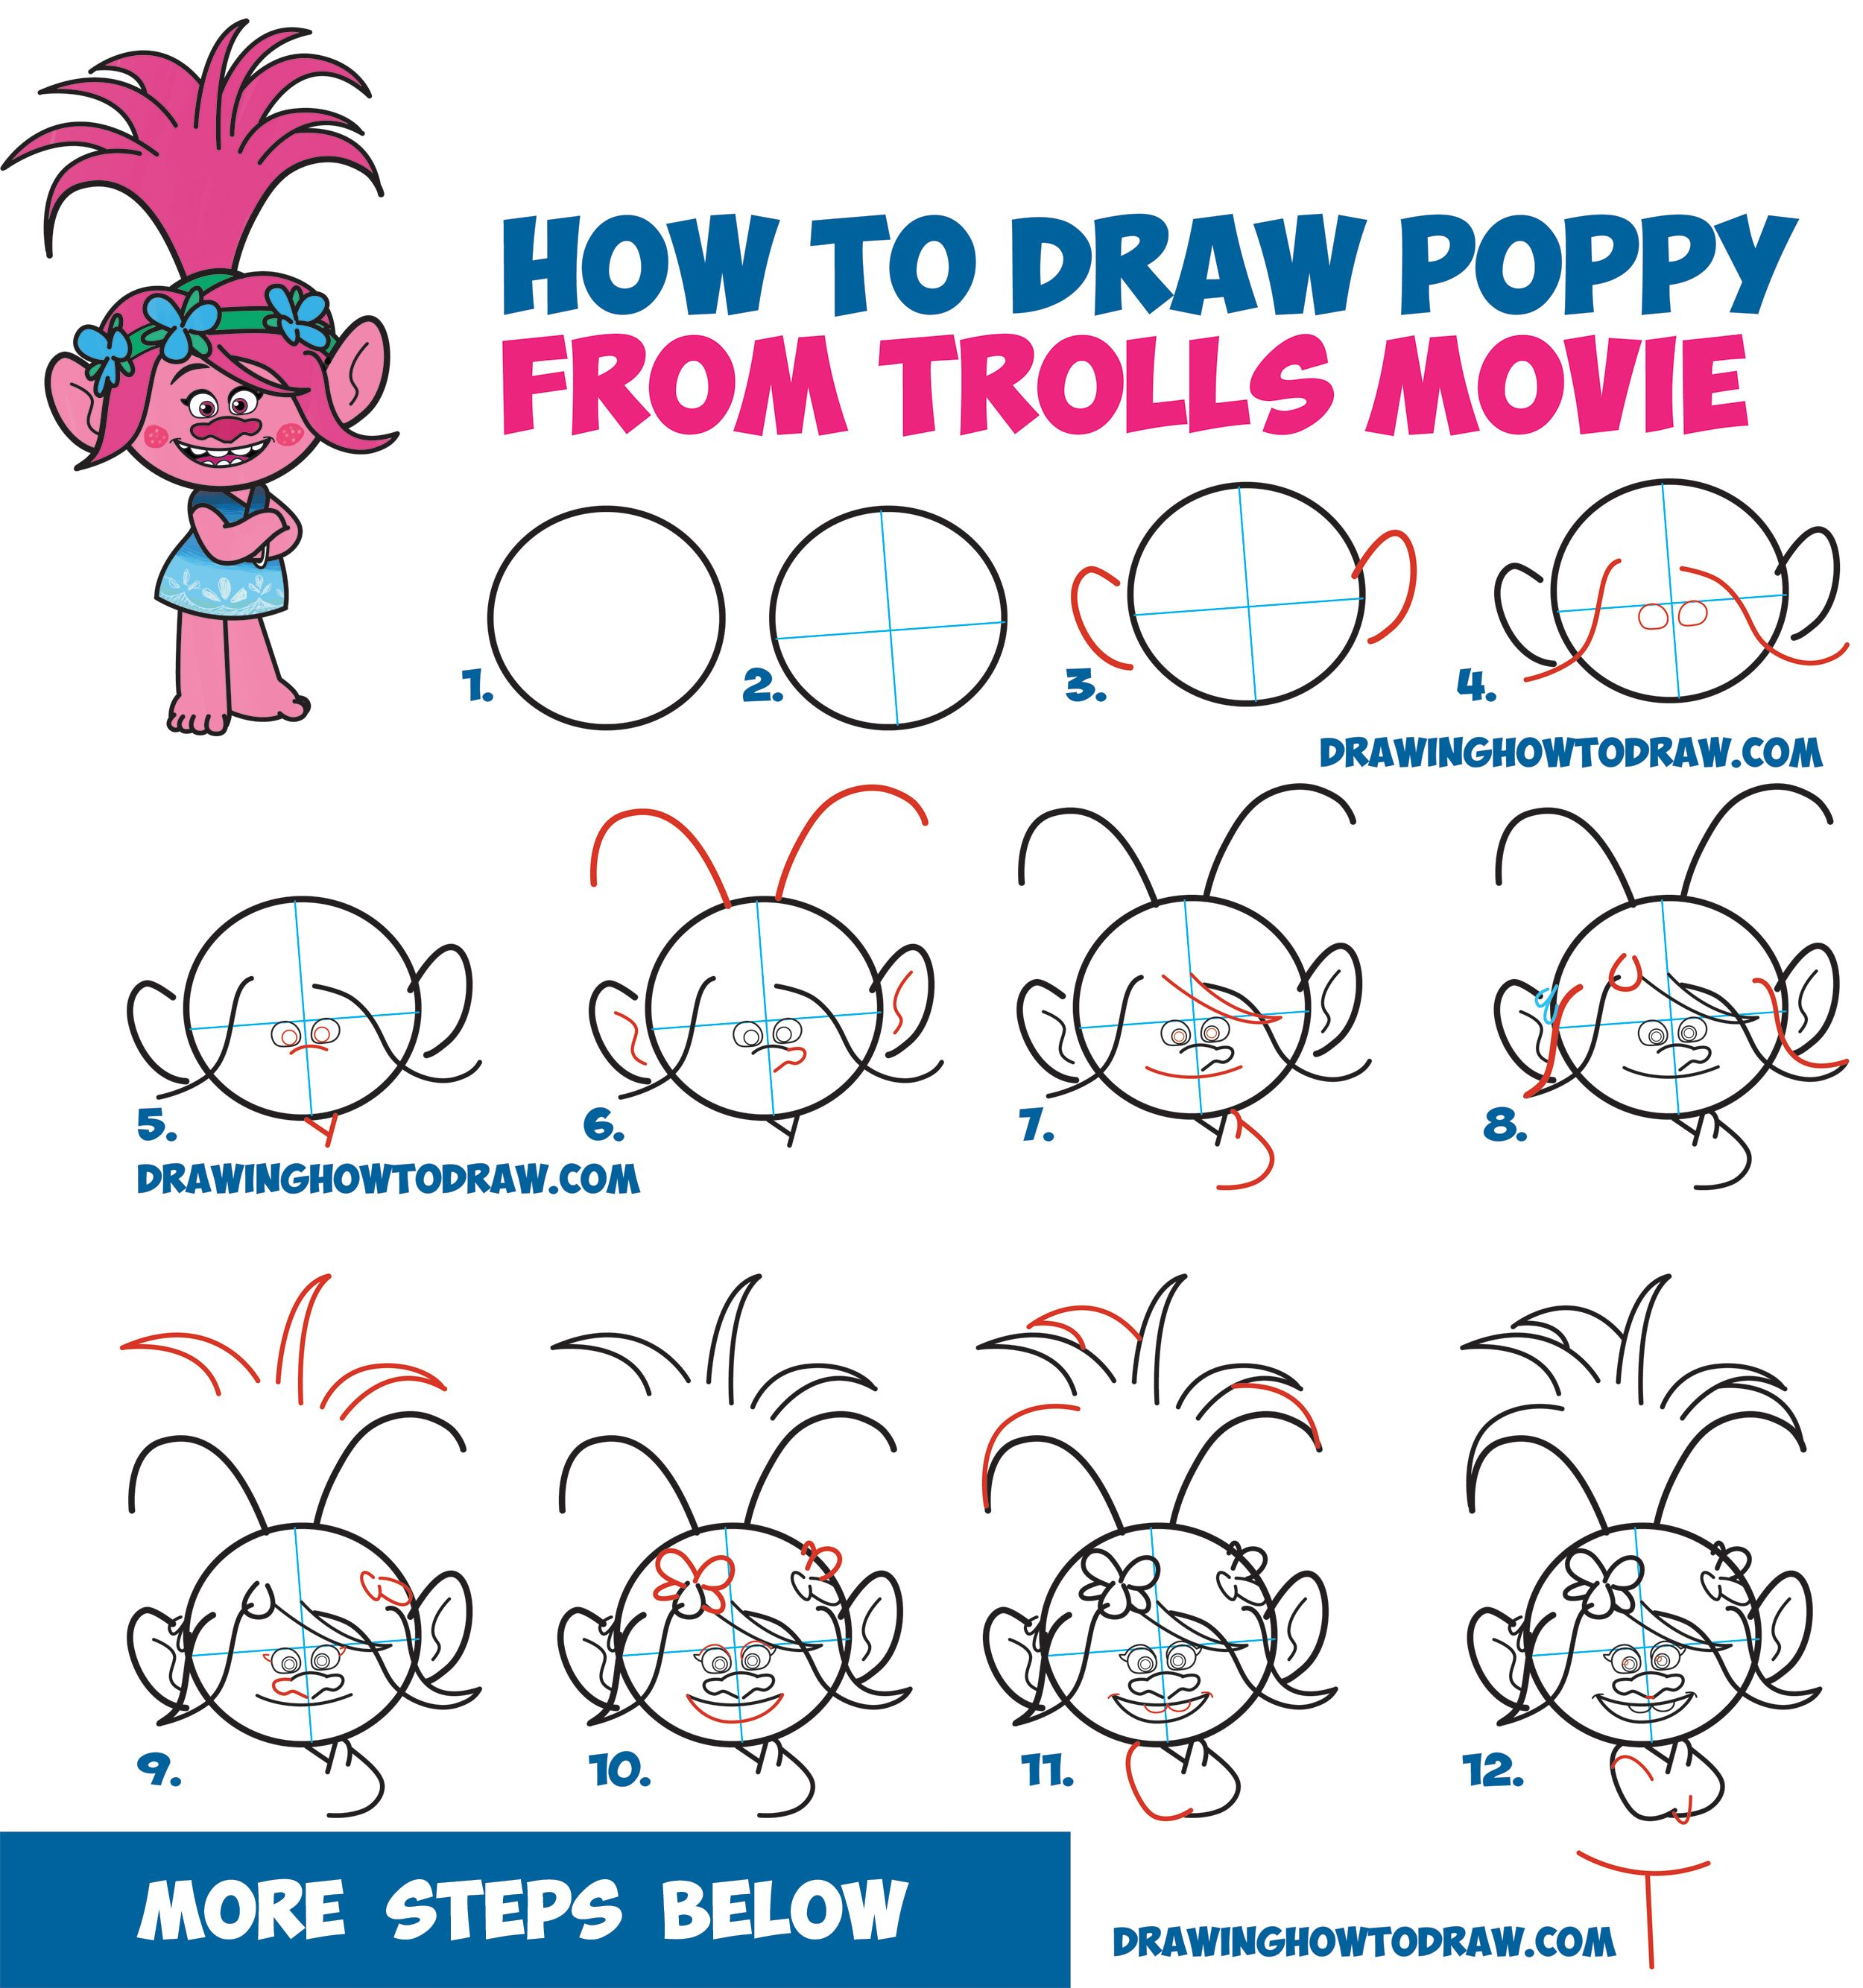 How To Draw Poppy From The Dreamworks Trolls Movie  Easy Step By Step  Drawing Tutorial